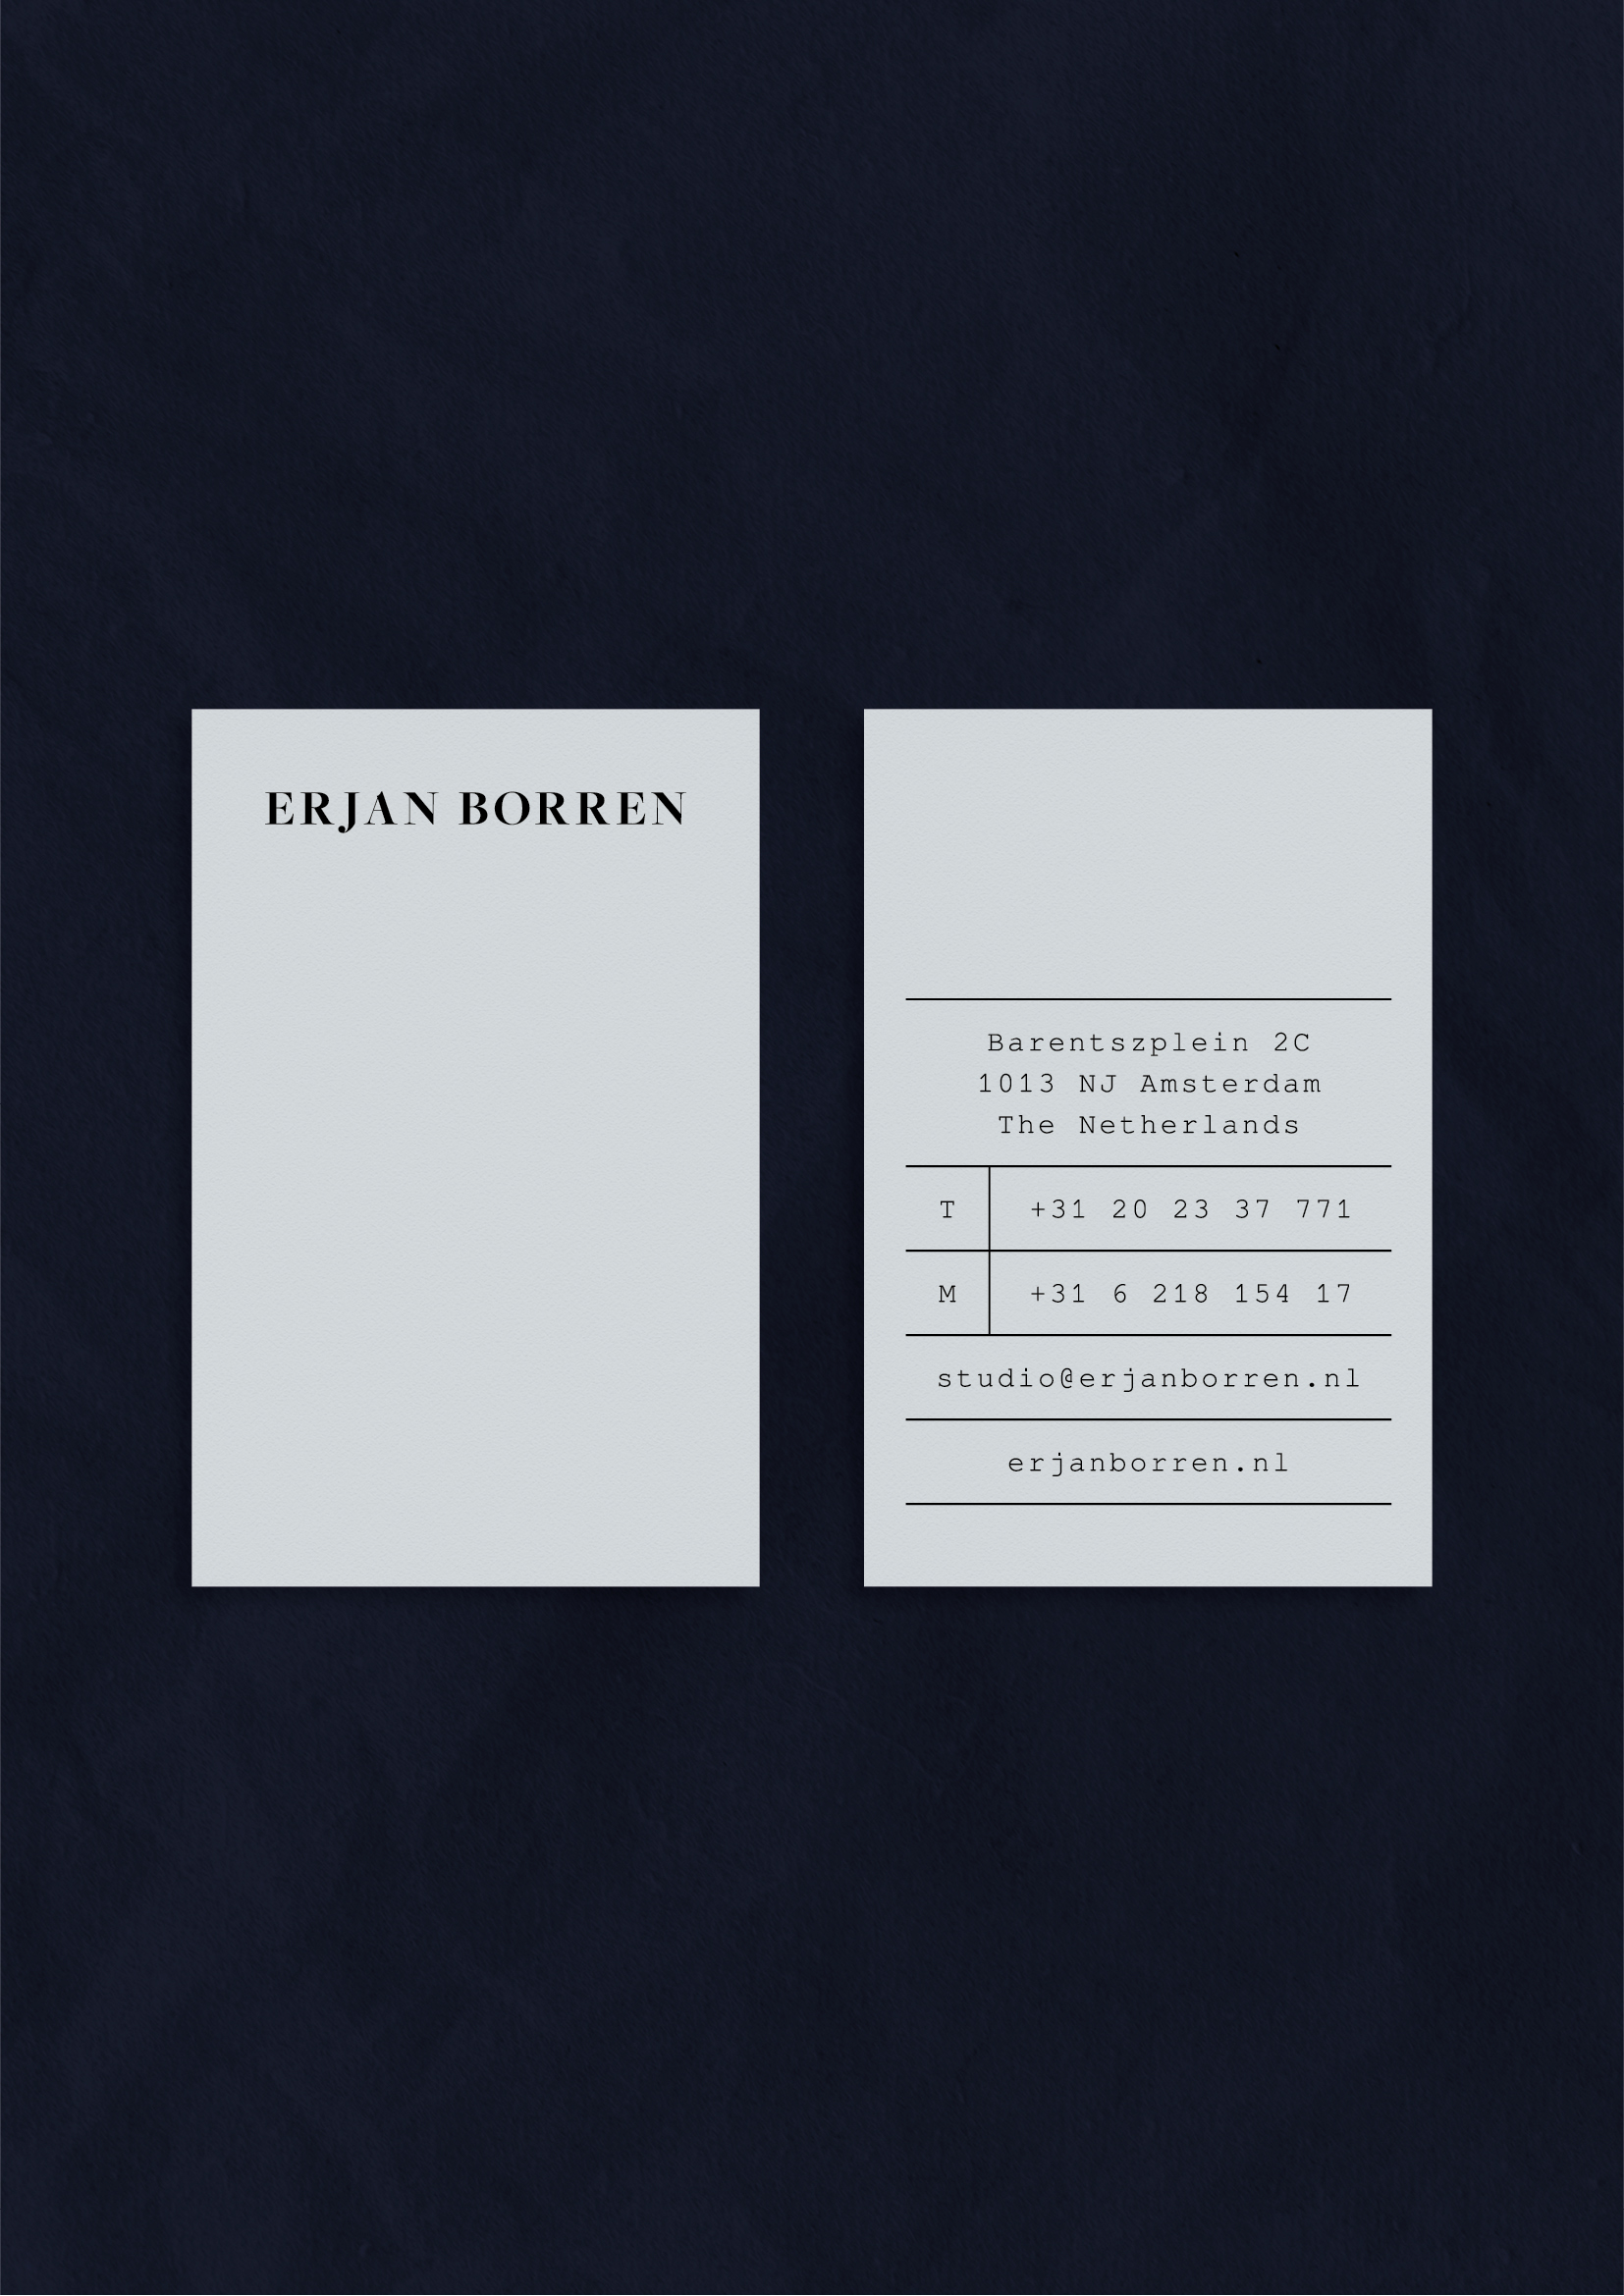 nicoletta-dalfino-erjan-borren-business-card